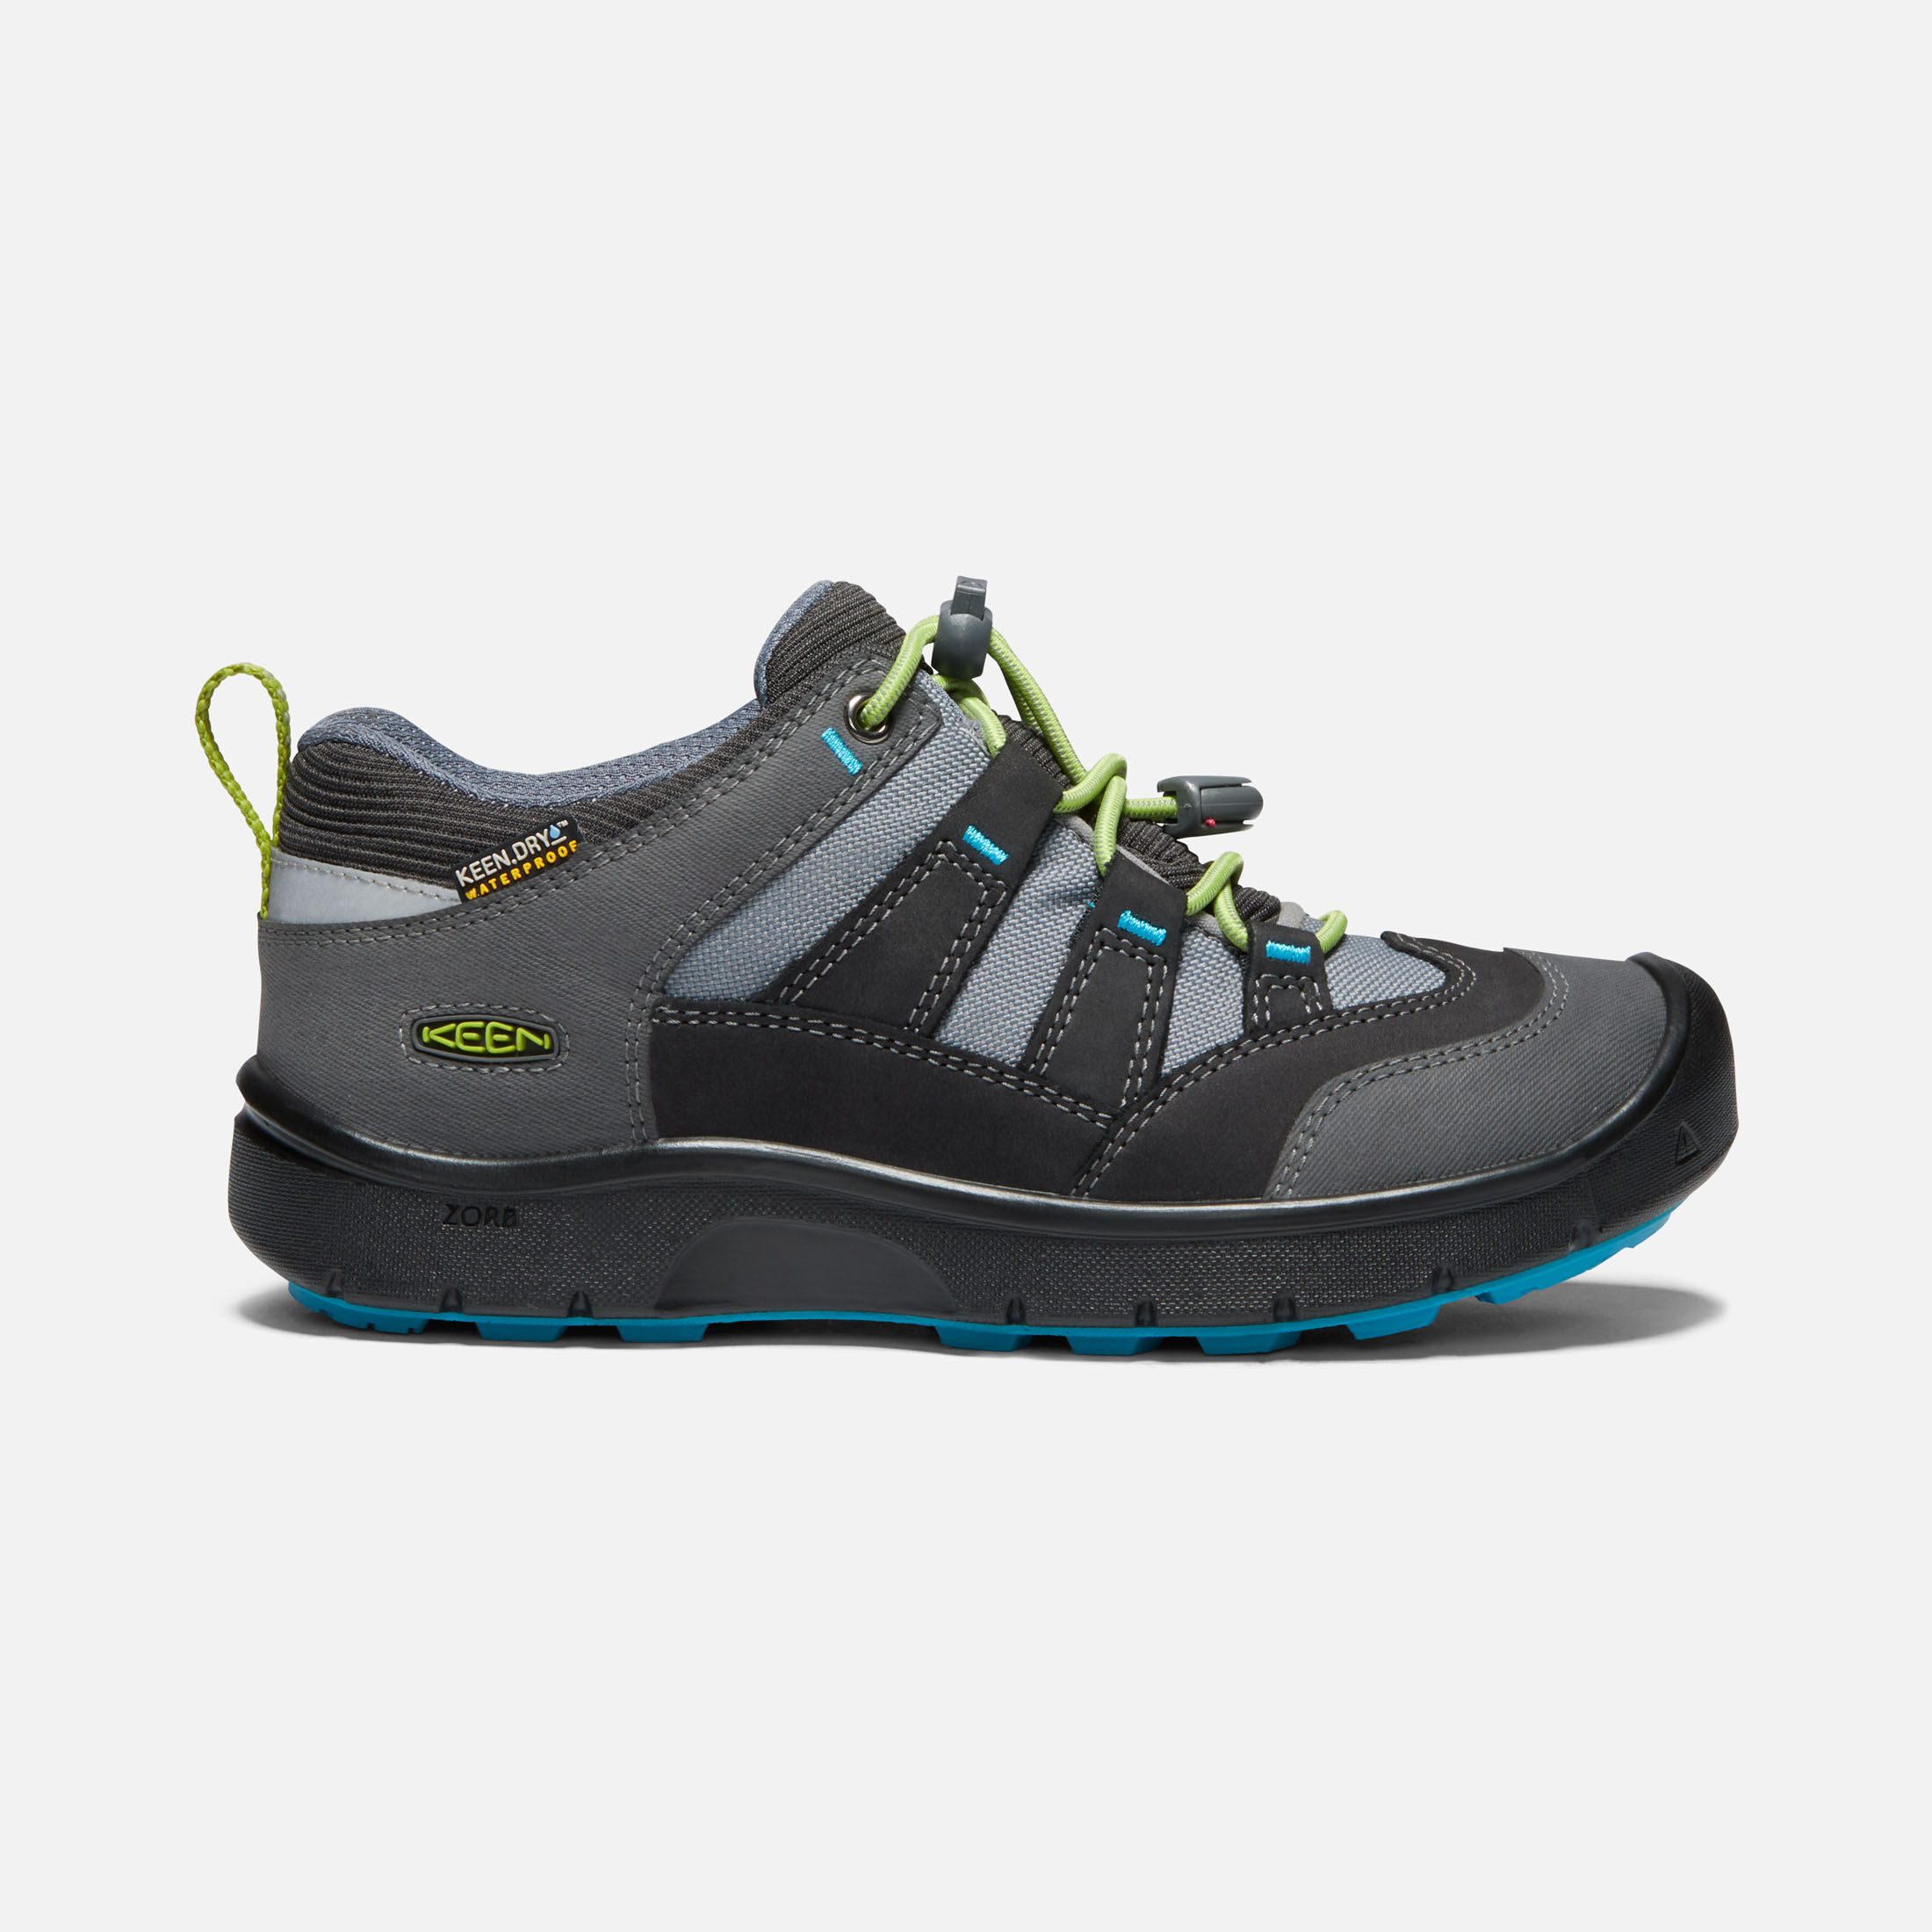 Keen Moxie Closed Toe Sandal - Little Kid(Children's) -Purple Sage/Greenery Cheap Real Authentic Sale Cheapest Genuine For Sale 100% Guaranteed Cheap Price 100% Guaranteed Online DEdfS